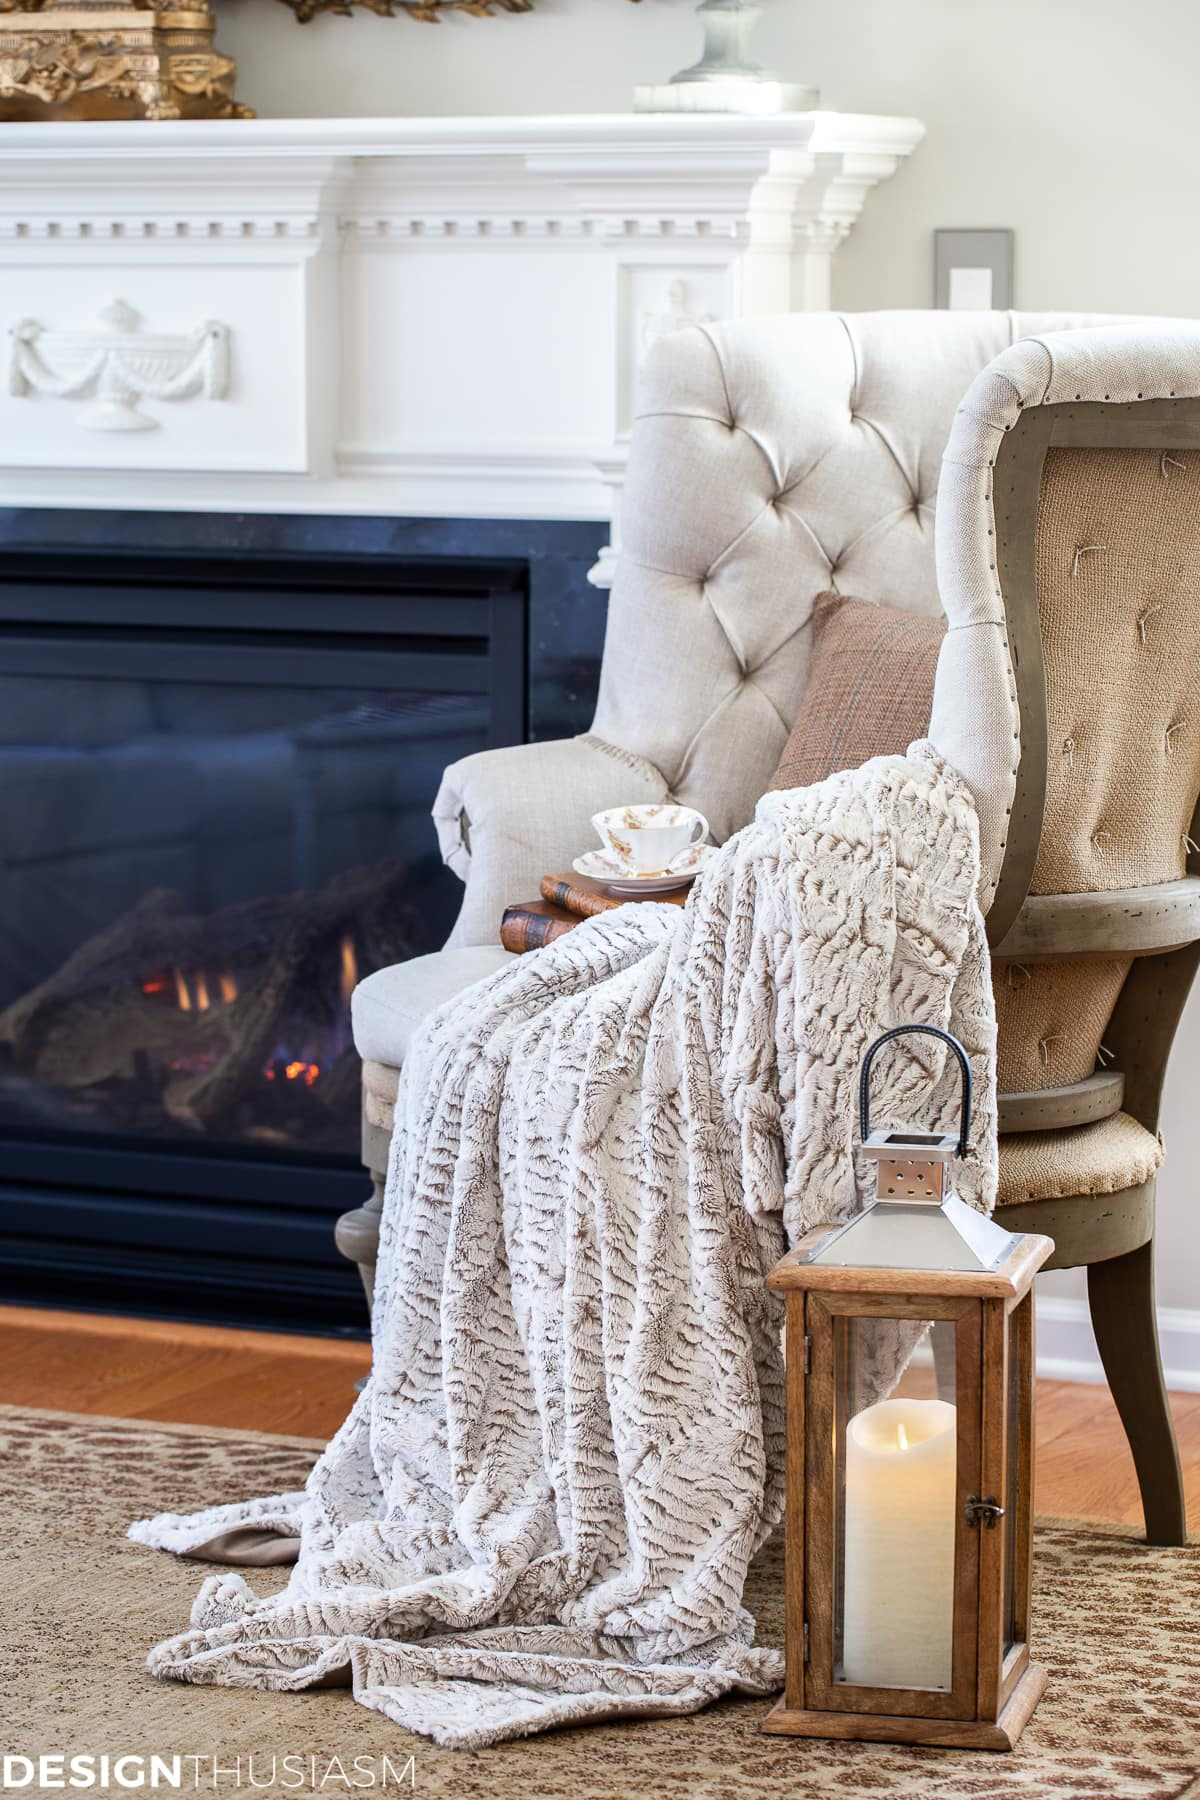 faux fur throw blanket with tweed pillow in a cozy winter living room